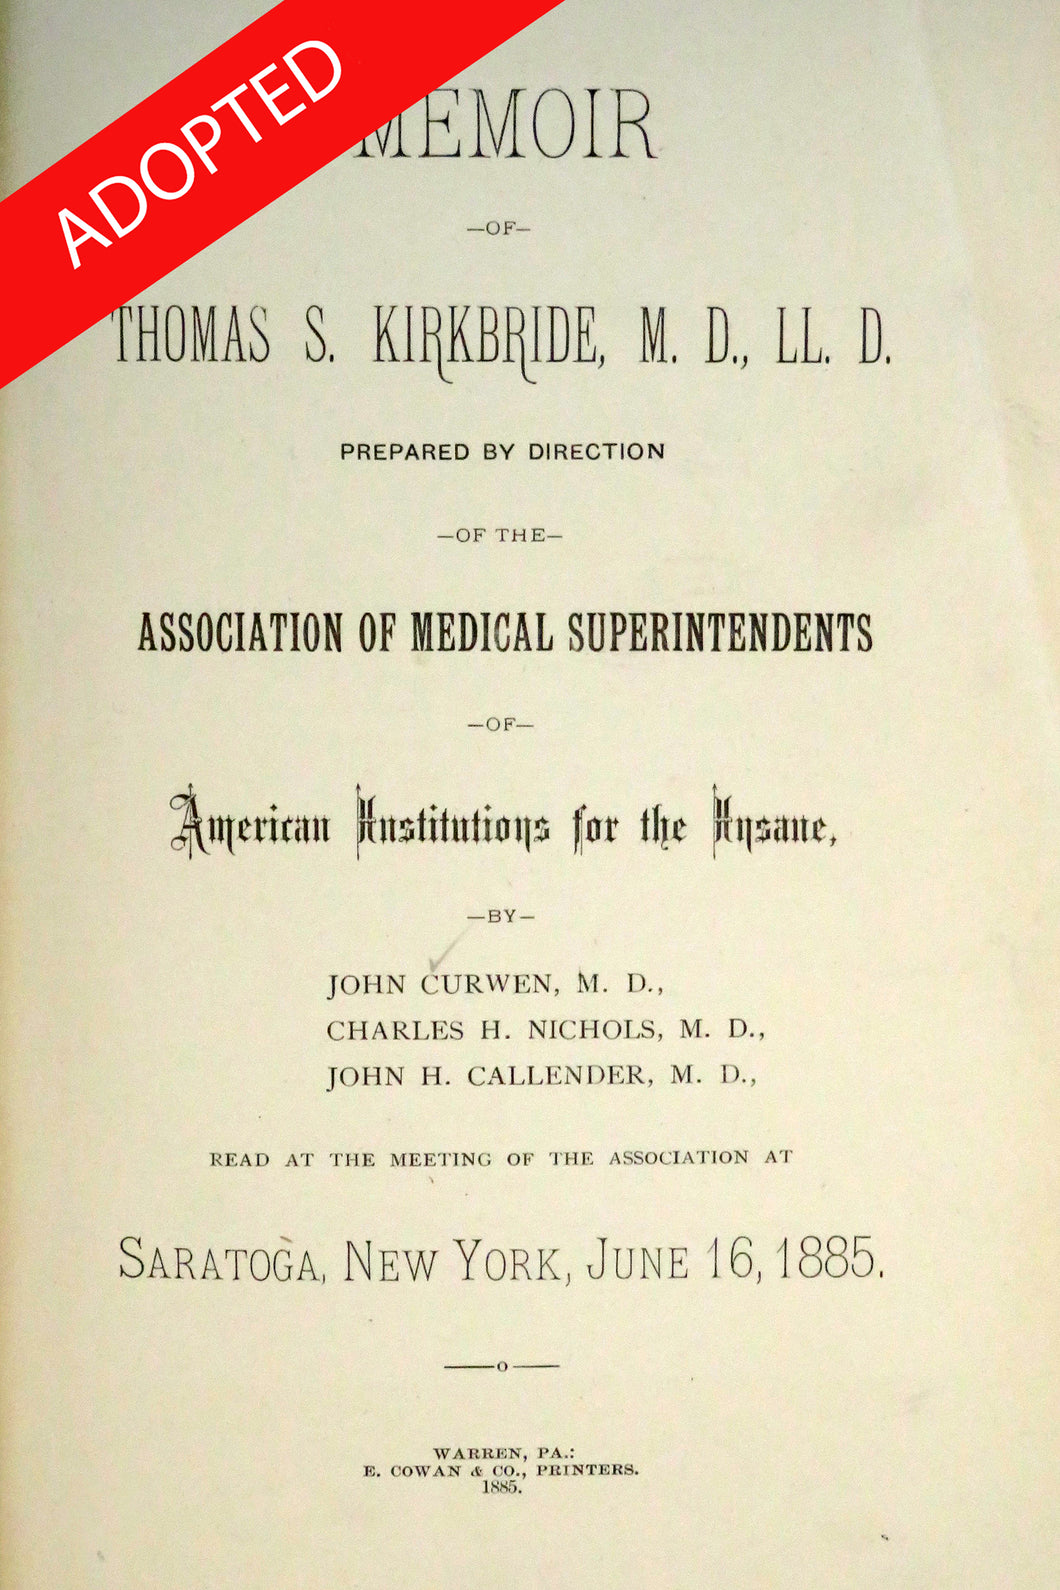 Memoir of Thomas S. Kirkbride, M.D., LL.D., prepared by direction of the Association of medical superintendents of American institutions for the insane